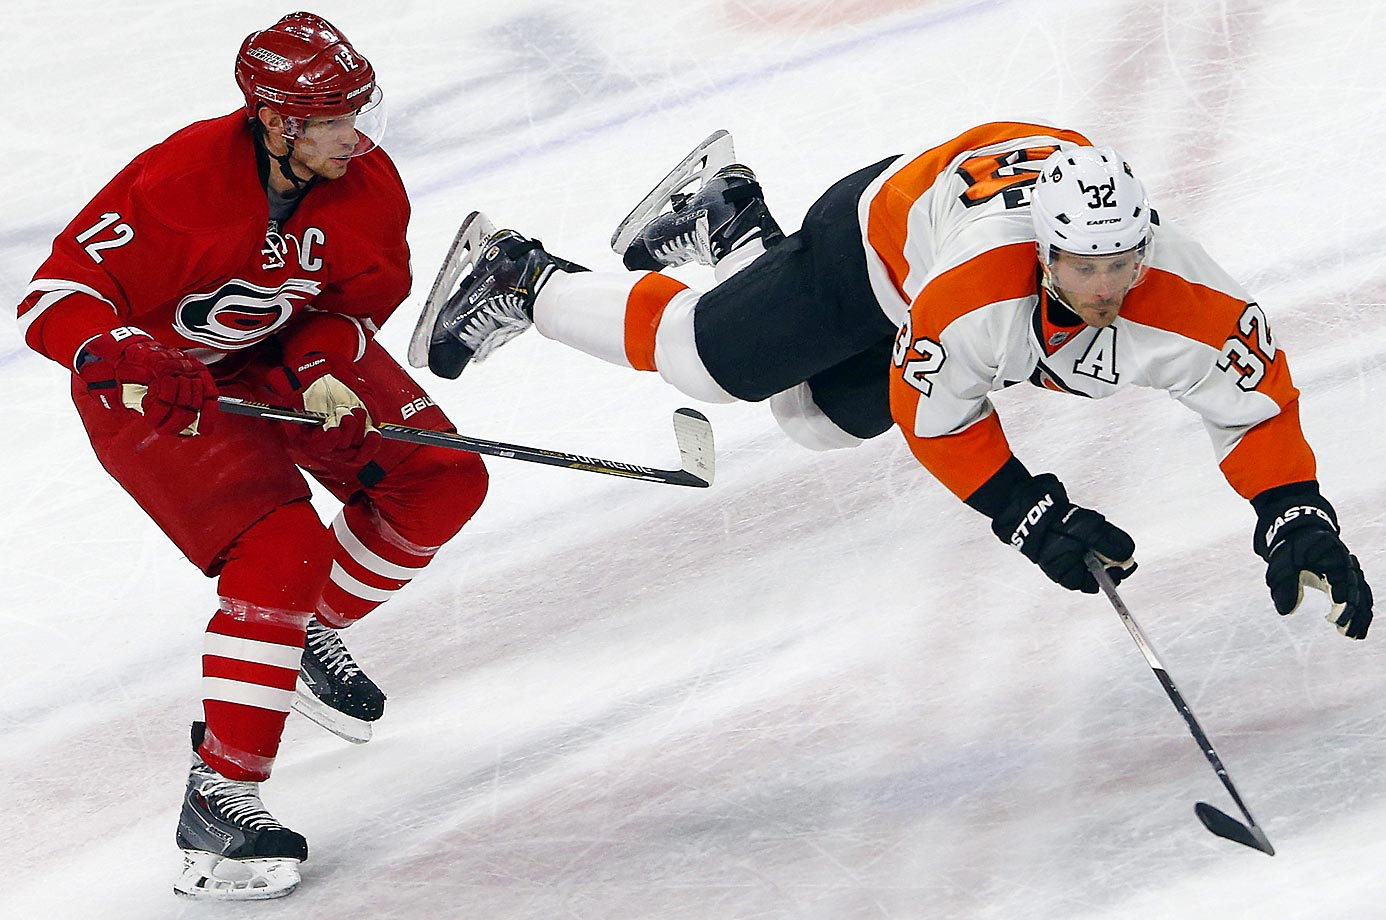 Carolina Hurricanes' Eric Staal upends Mark Streit of the Philadelphia Flyers.